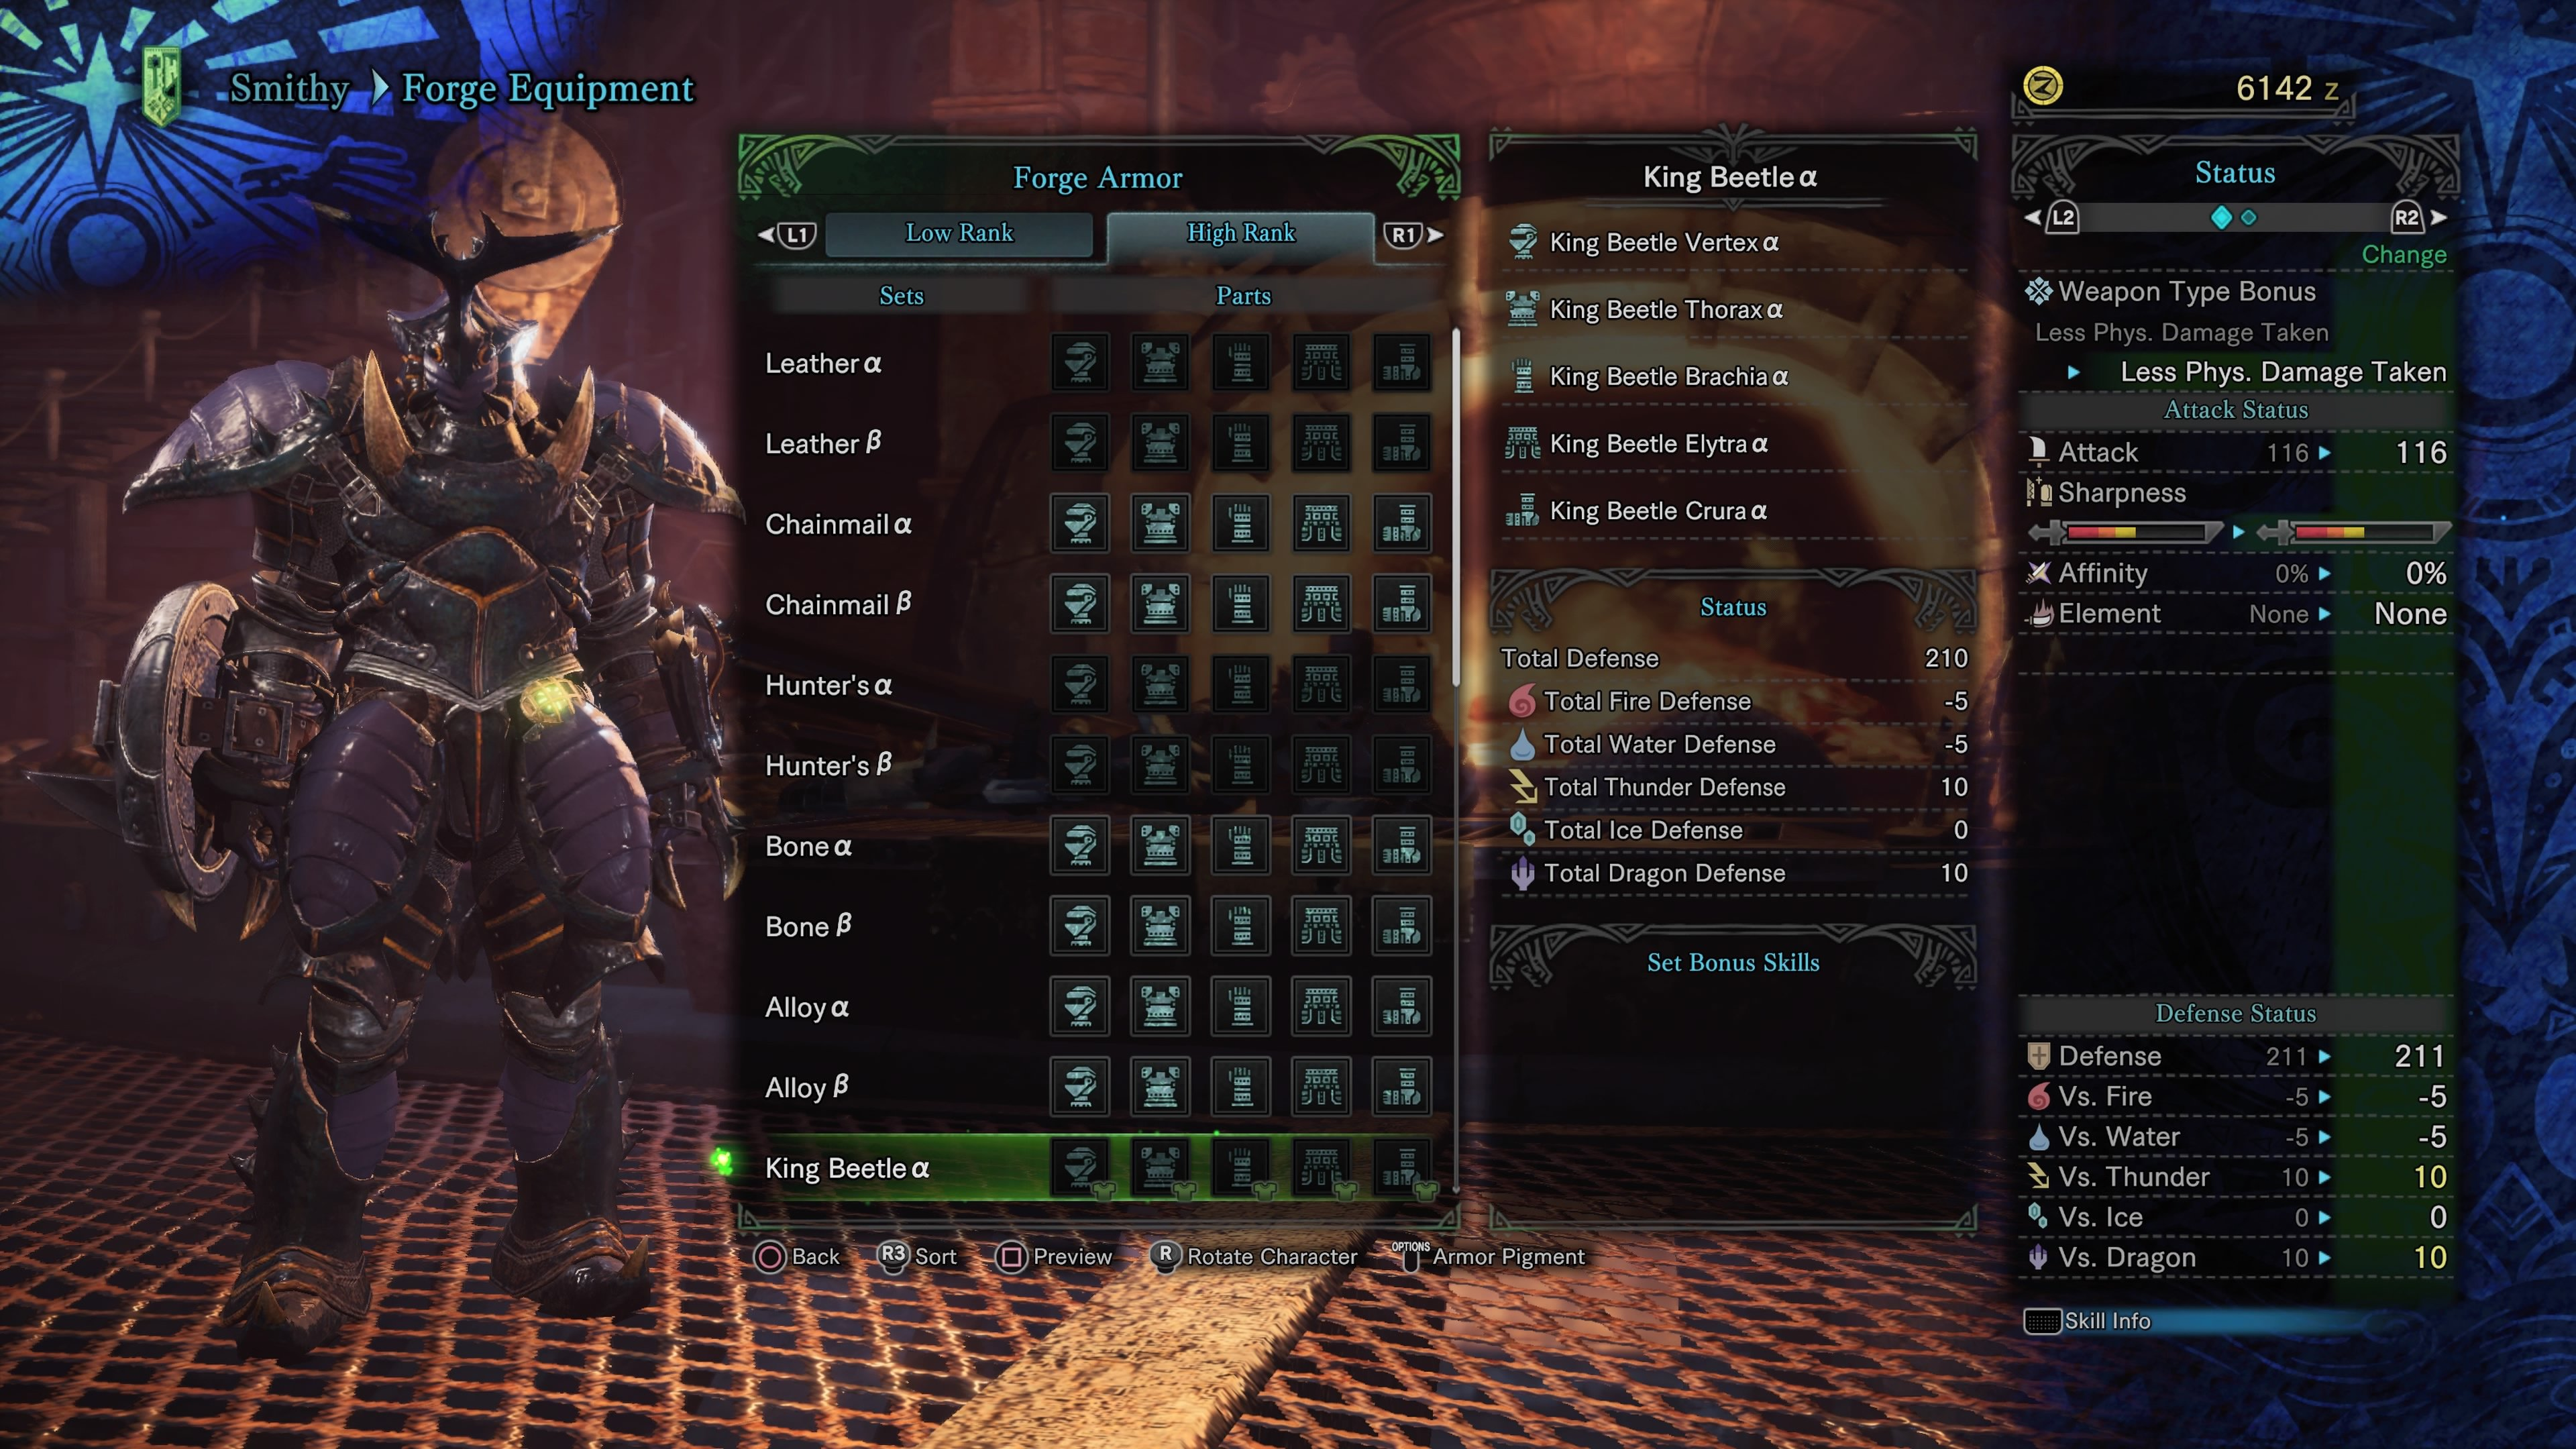 mhw high rank lvl guide